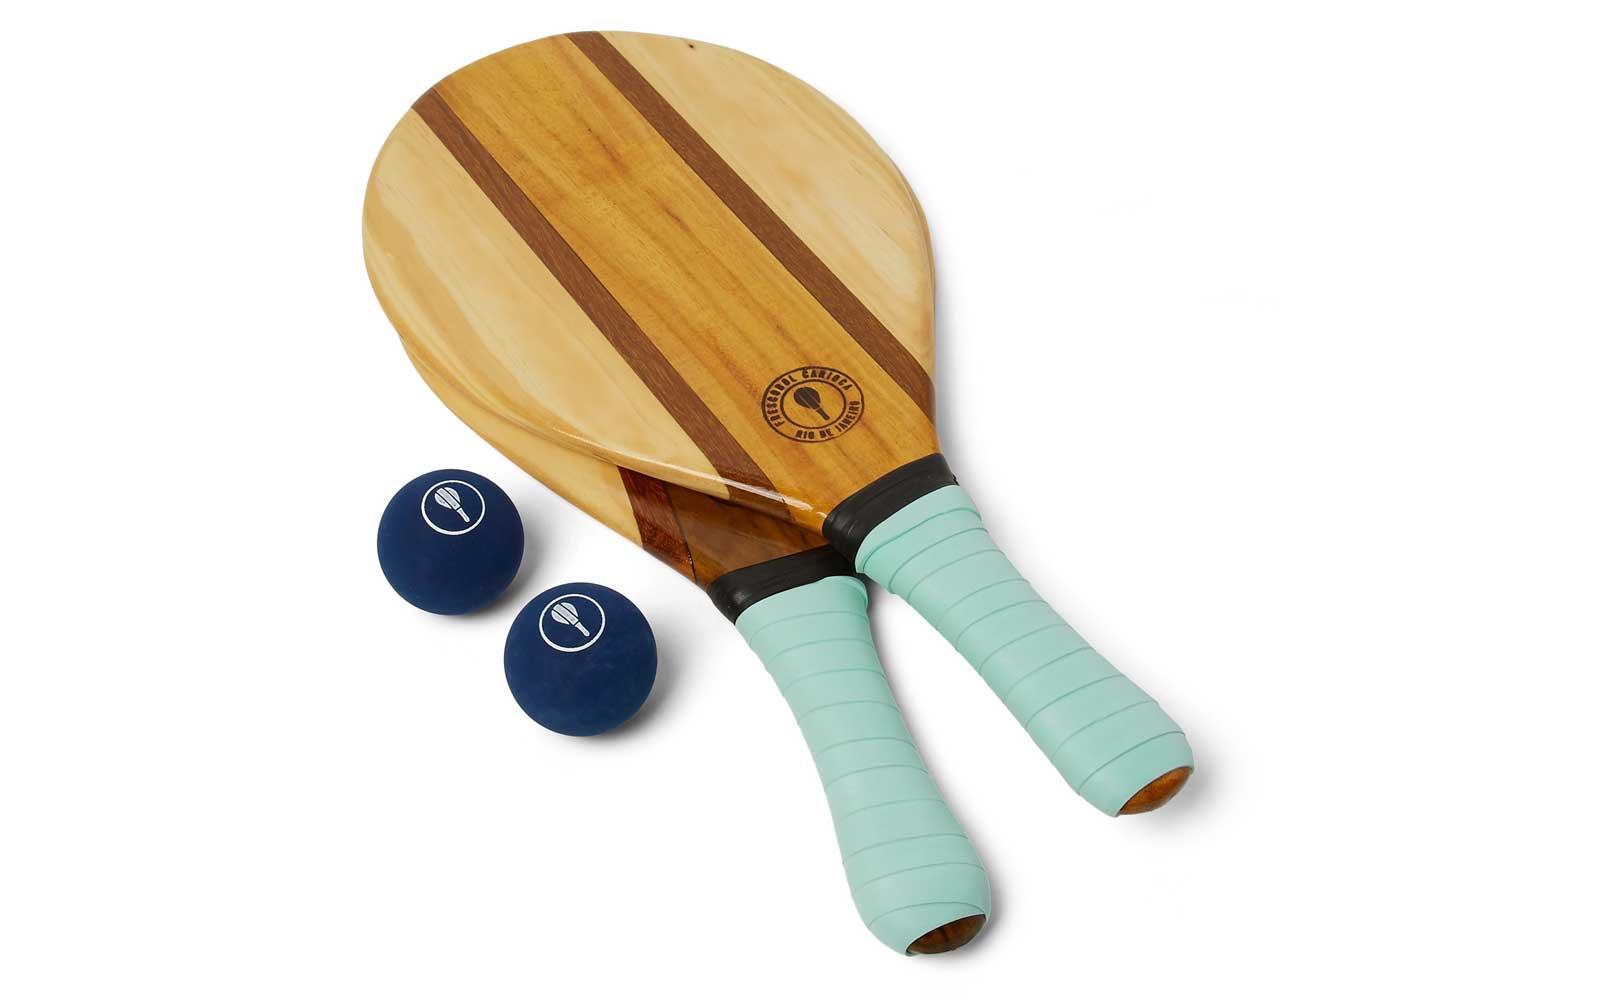 Wooden Beach Ball and Bat Set